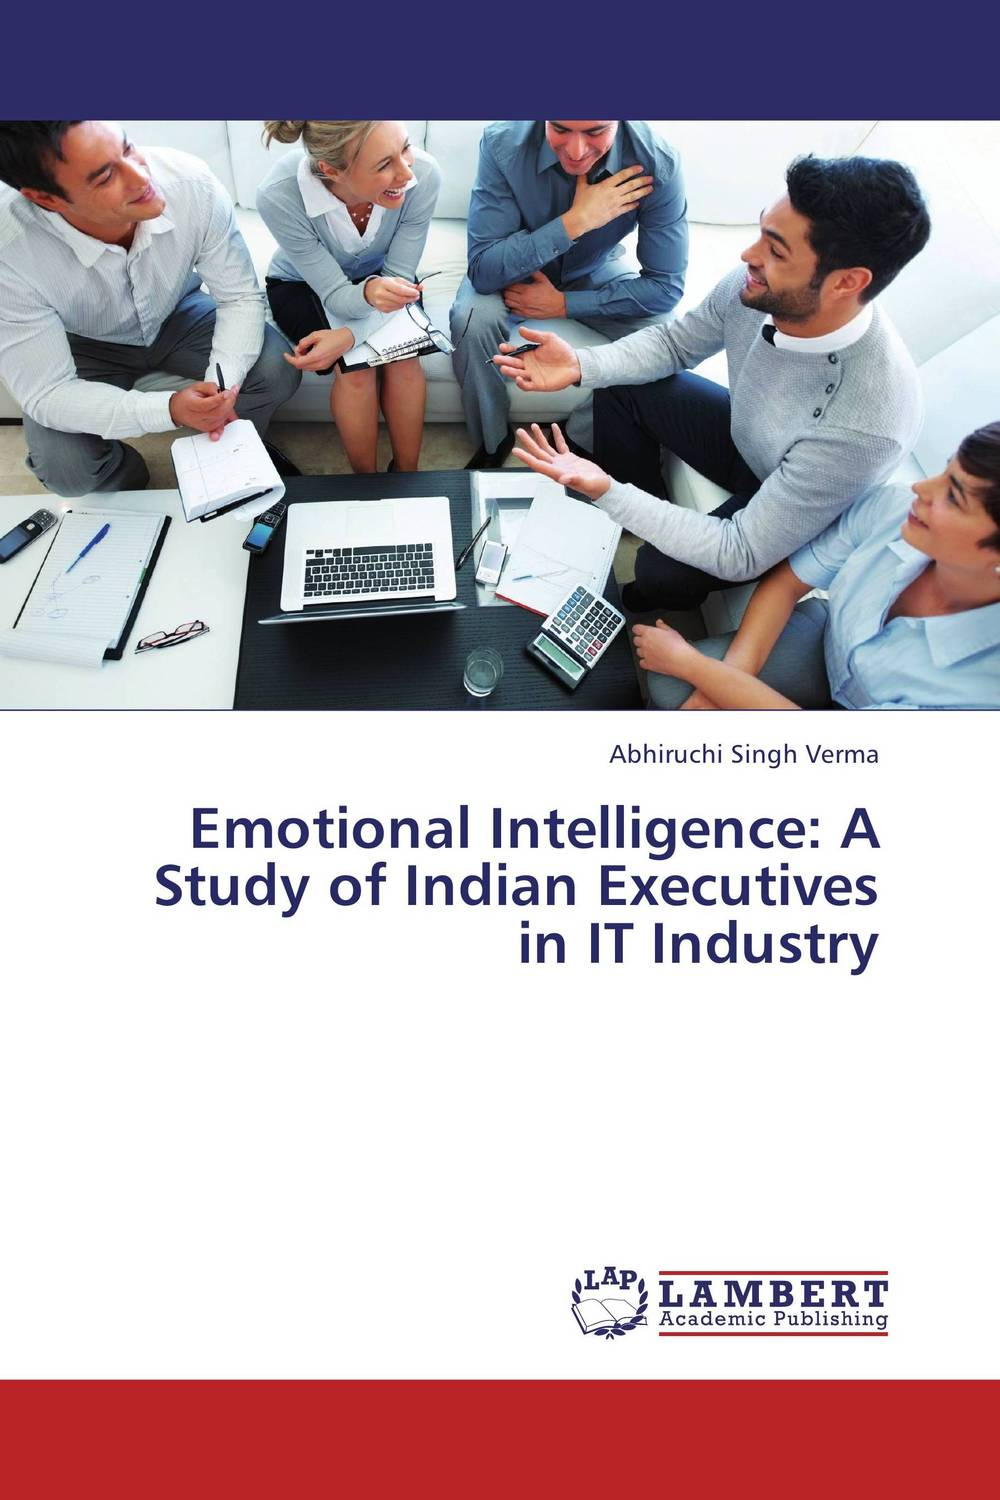 Emotional Intelligence: A Study of Indian Executives in IT Industry diana giddon unequaled tips for building a successful career through emotional intelligence